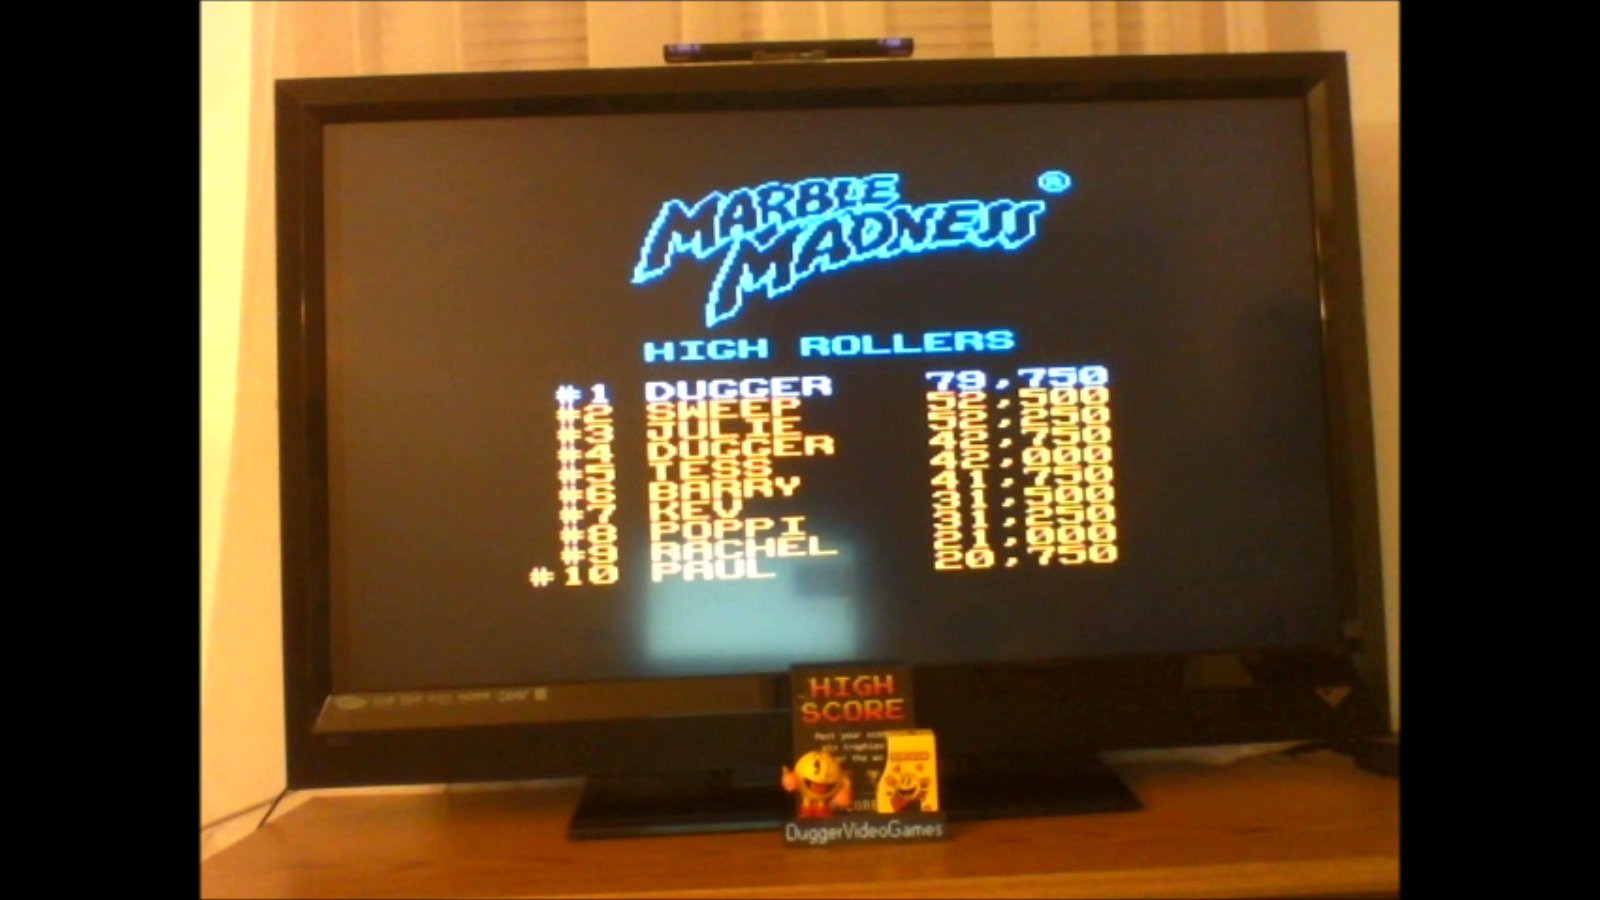 DuggerVideoGames: Marble Madness (NES/Famicom Emulated) 79,750 points on 2017-01-14 03:19:07